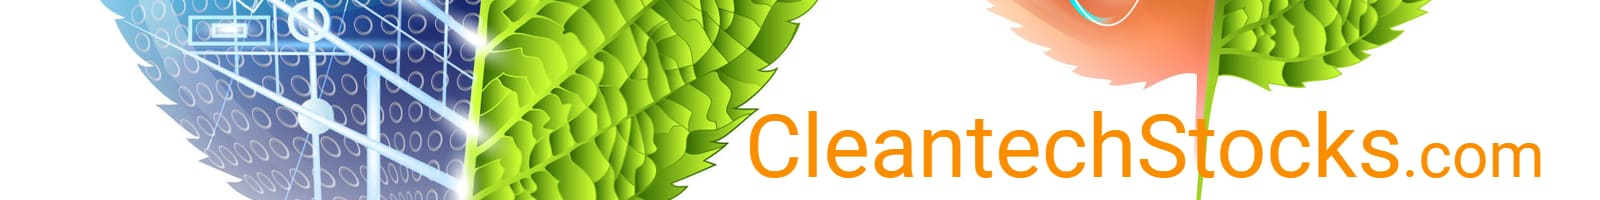 Cleantech stocks header